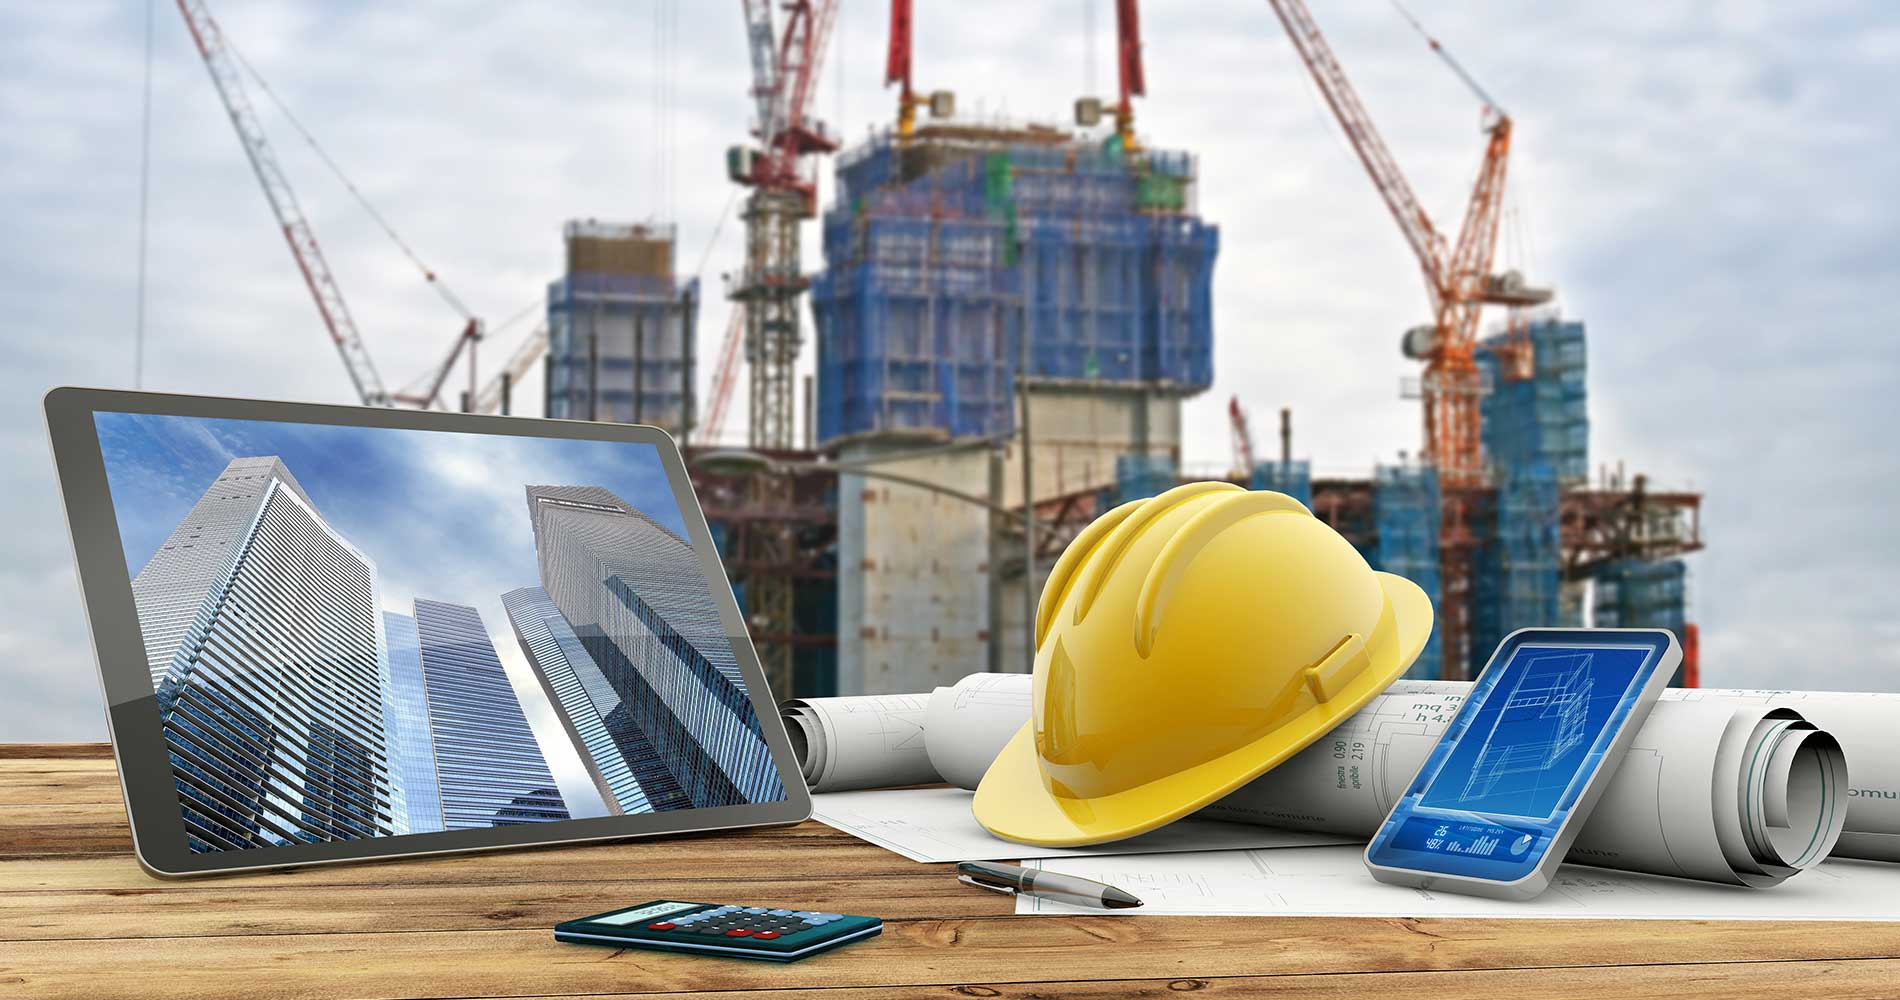 How Meeting Room Technology Can Improve Safety and Sustainability